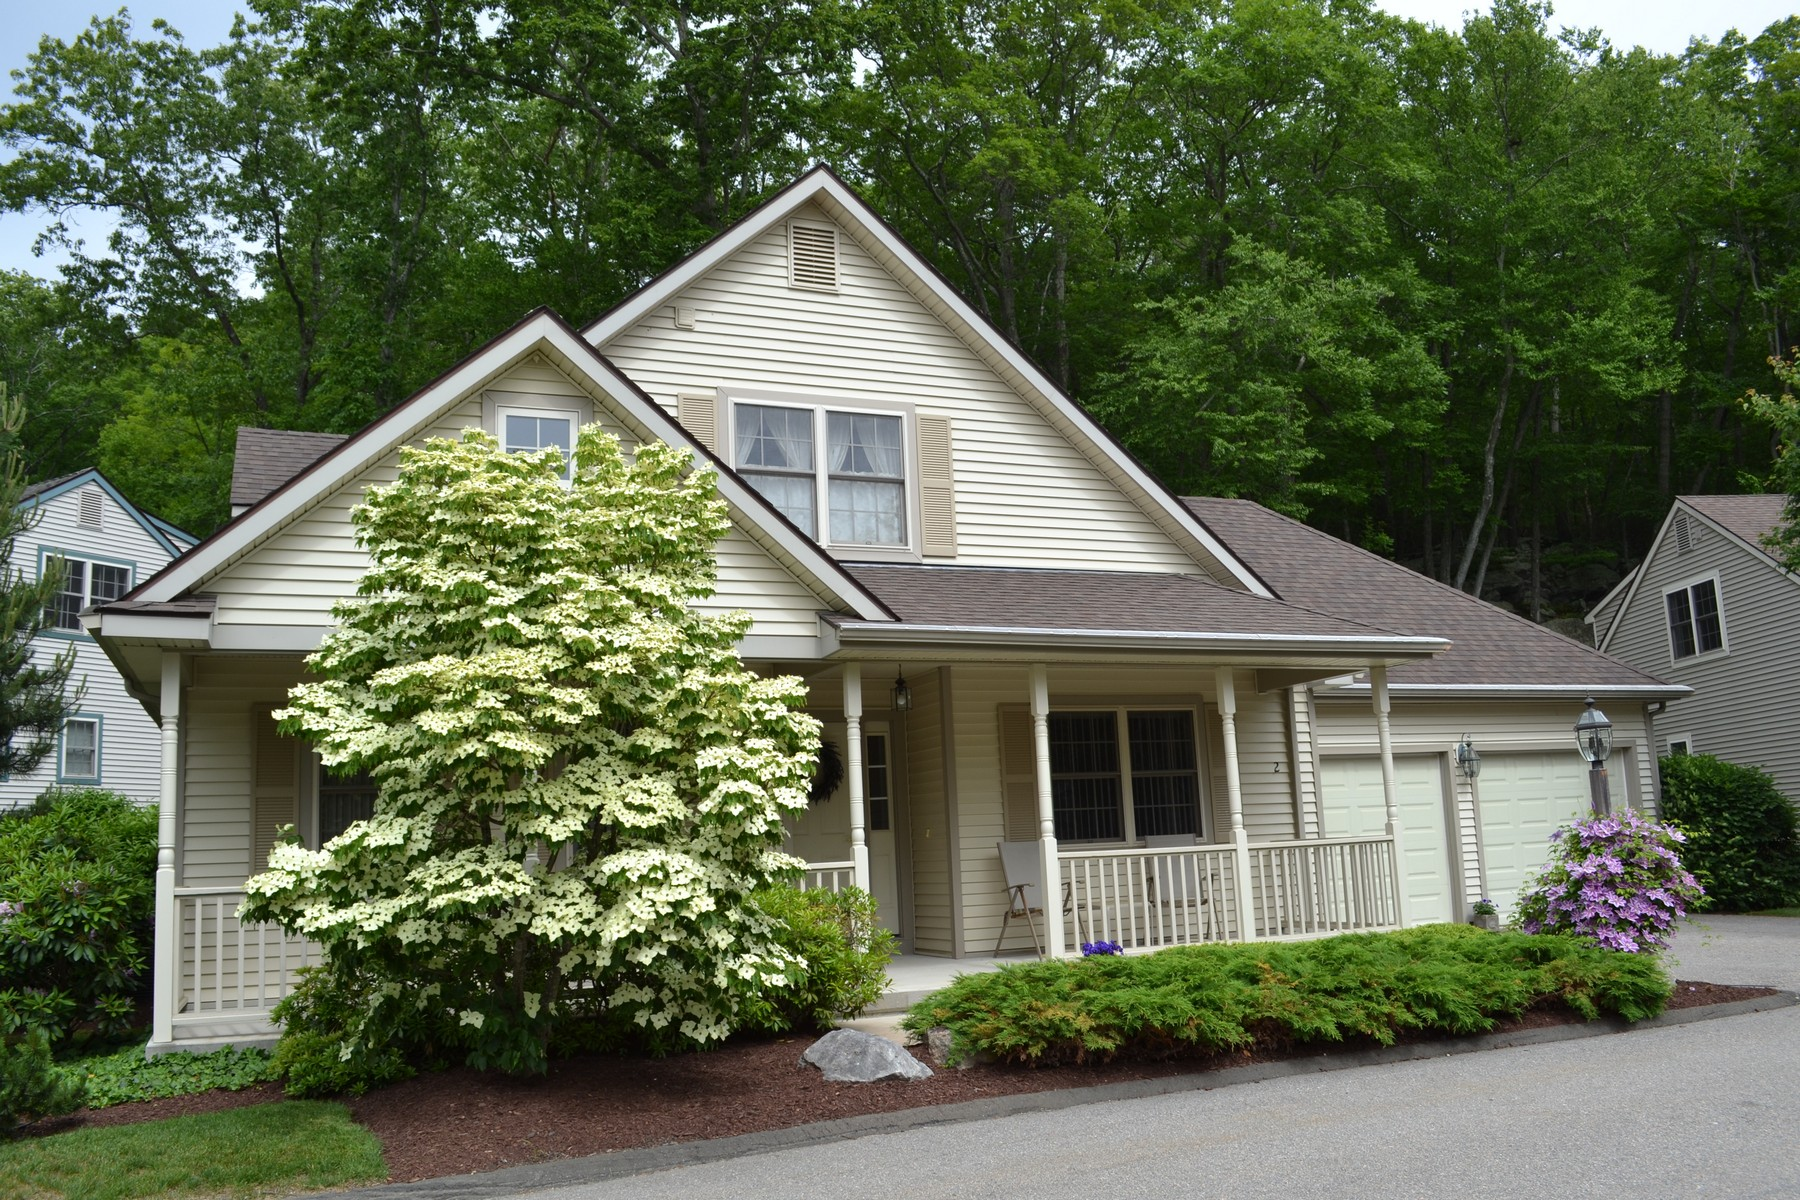 Single Family Home for Sale at Magnificent Chapman Woods Custom Home 2 Gooseberry Ln East Lyme, Connecticut 06357 United States